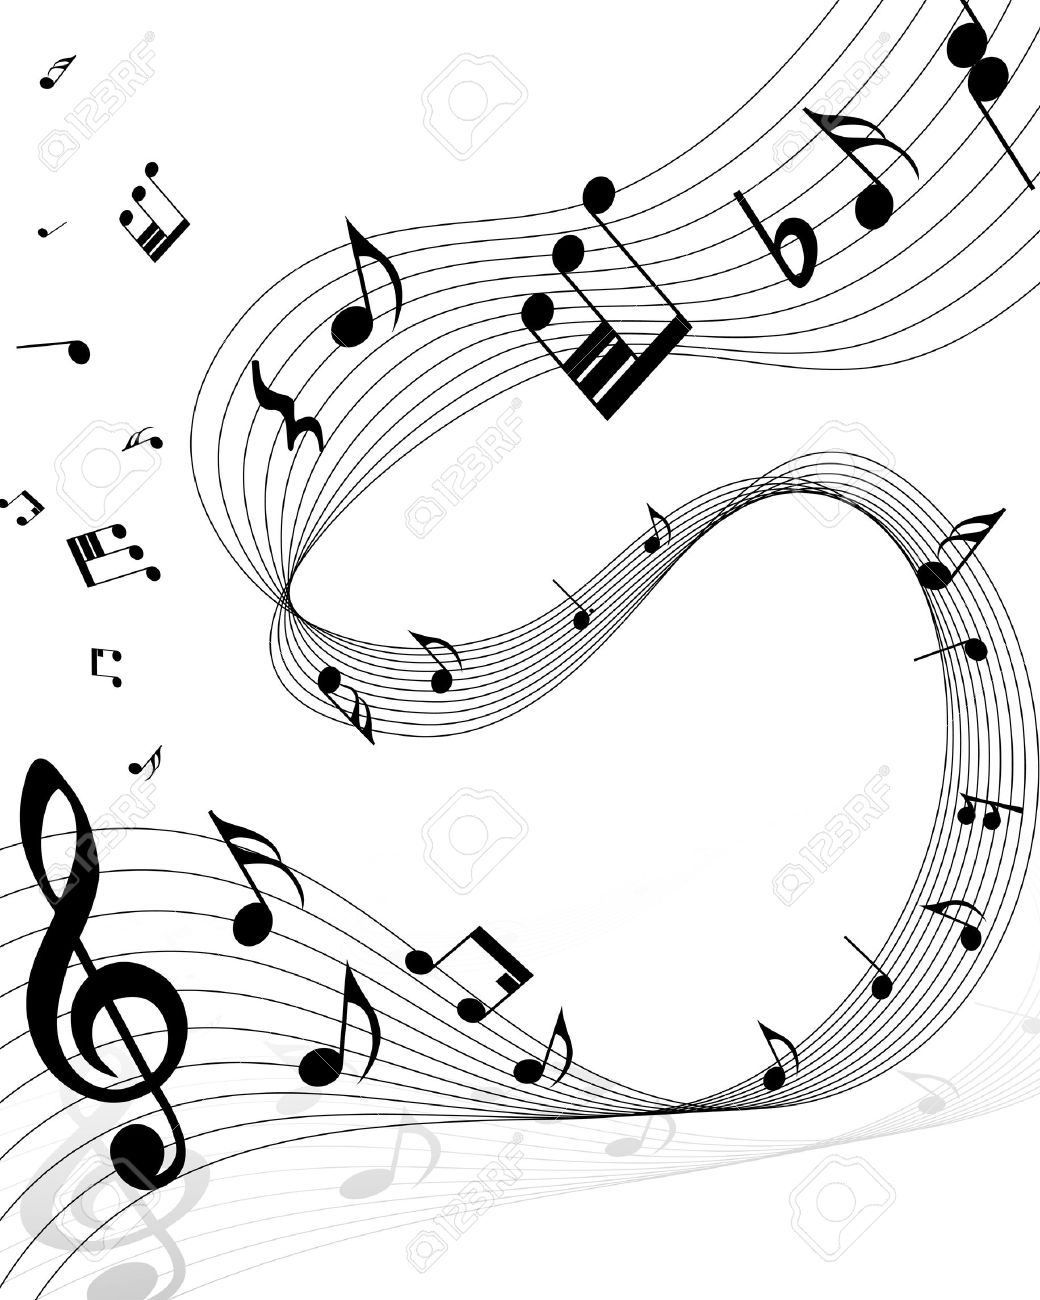 Musical notes staff background on white vector by tassel78 image - Sheet Music Musical Notes Staff Background On White